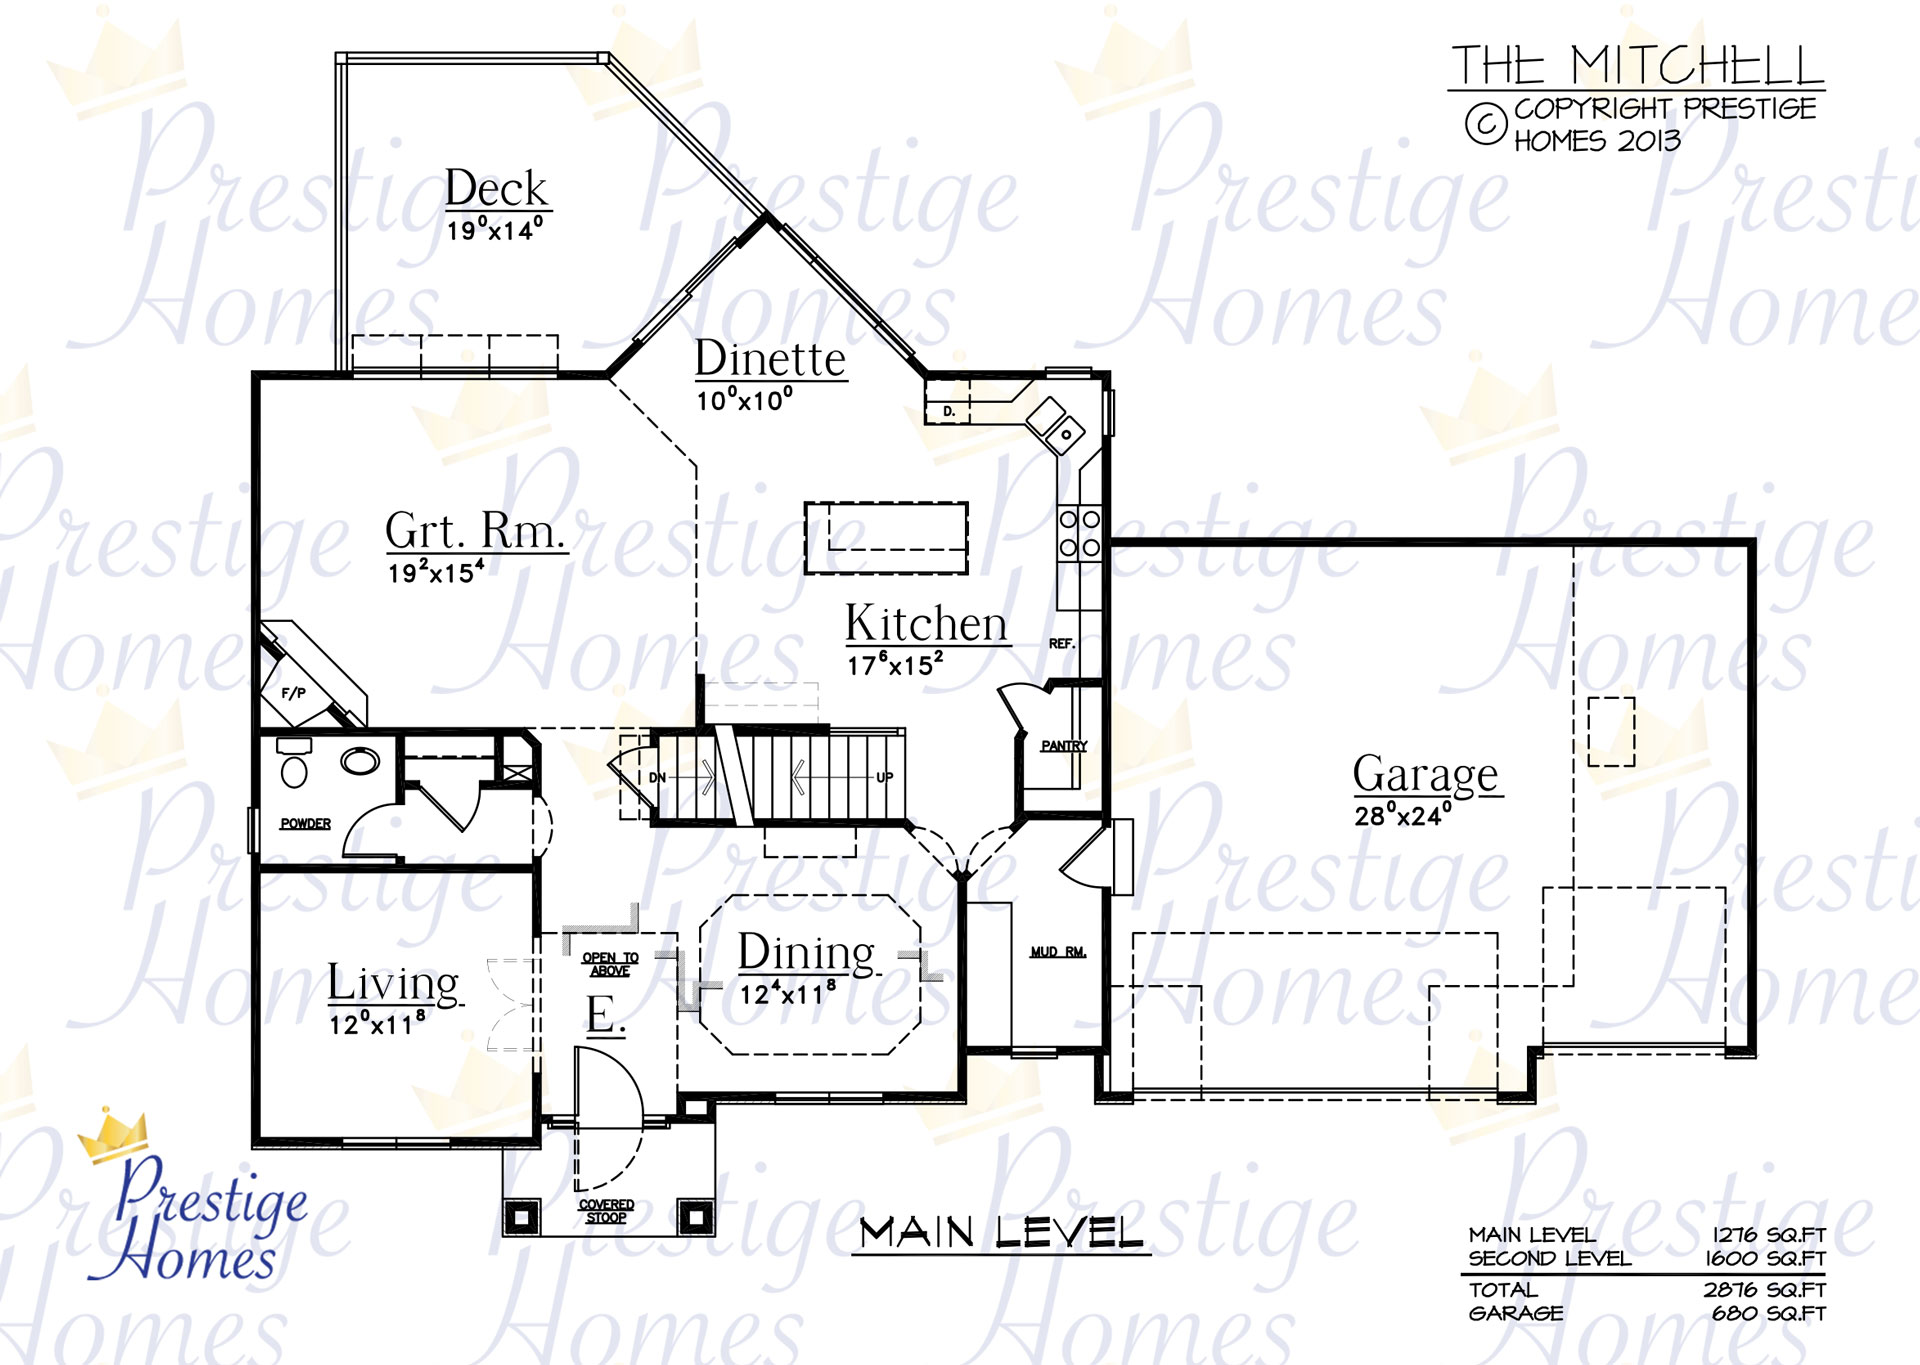 Prestige Homes - Floor Plan - Mitchell - Main